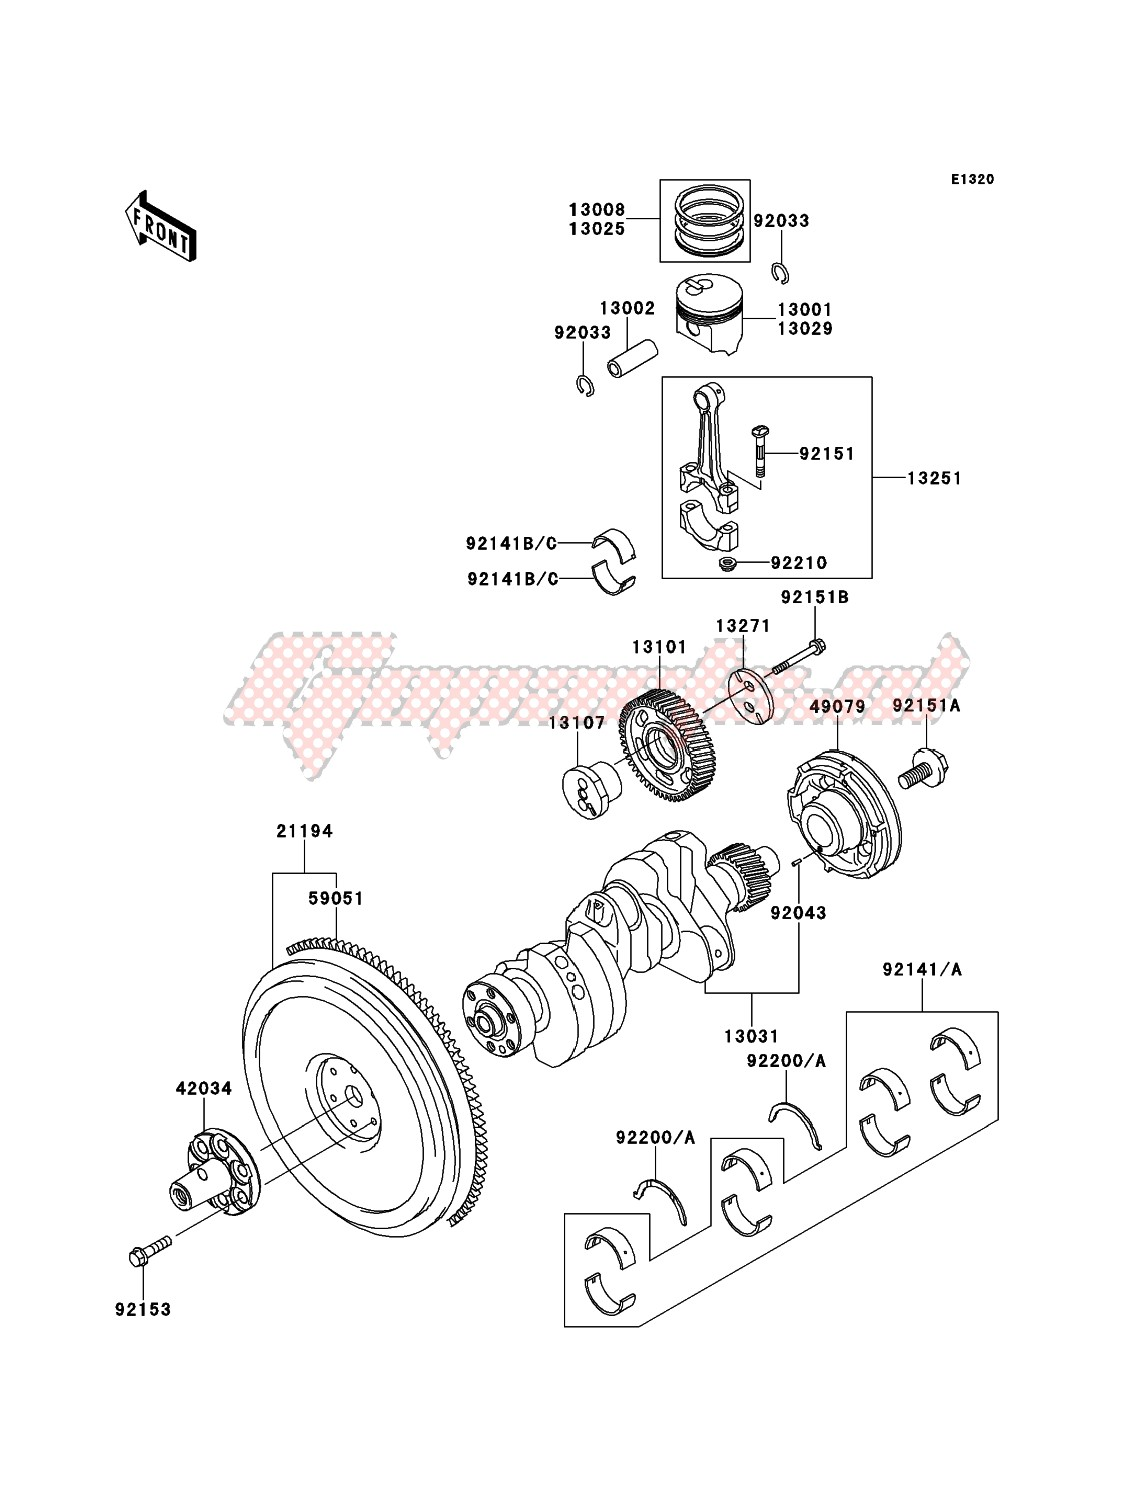 Engine-Crankshaft/Piston(s)